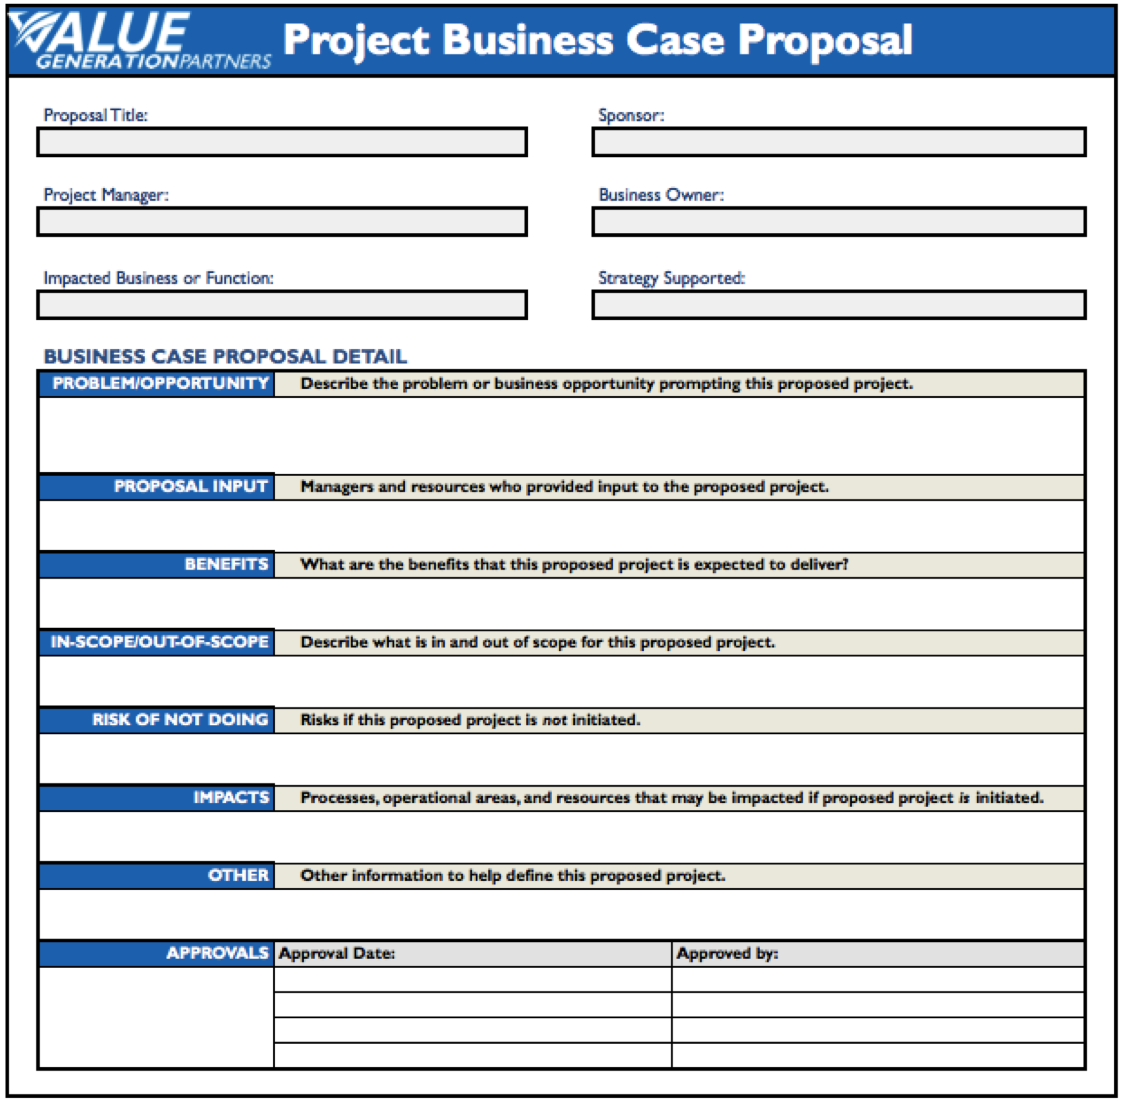 Regardless of your project business case proposal template format regardless of your project business case proposal template format wdtpcn00 wajeb Gallery